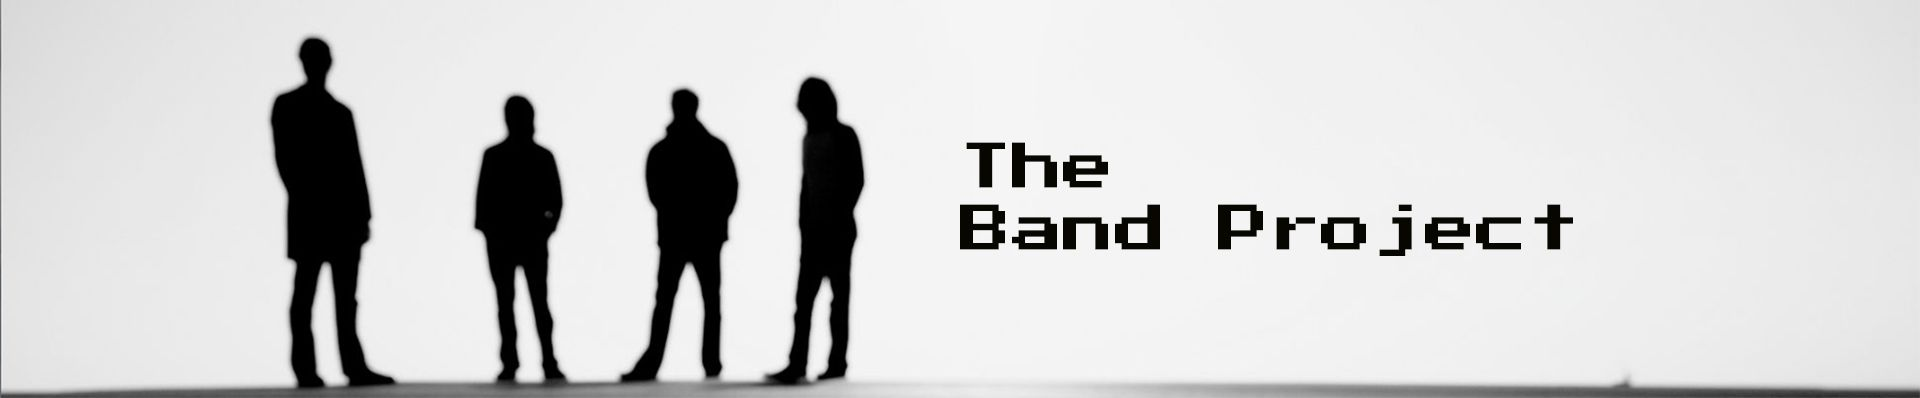 bandproject